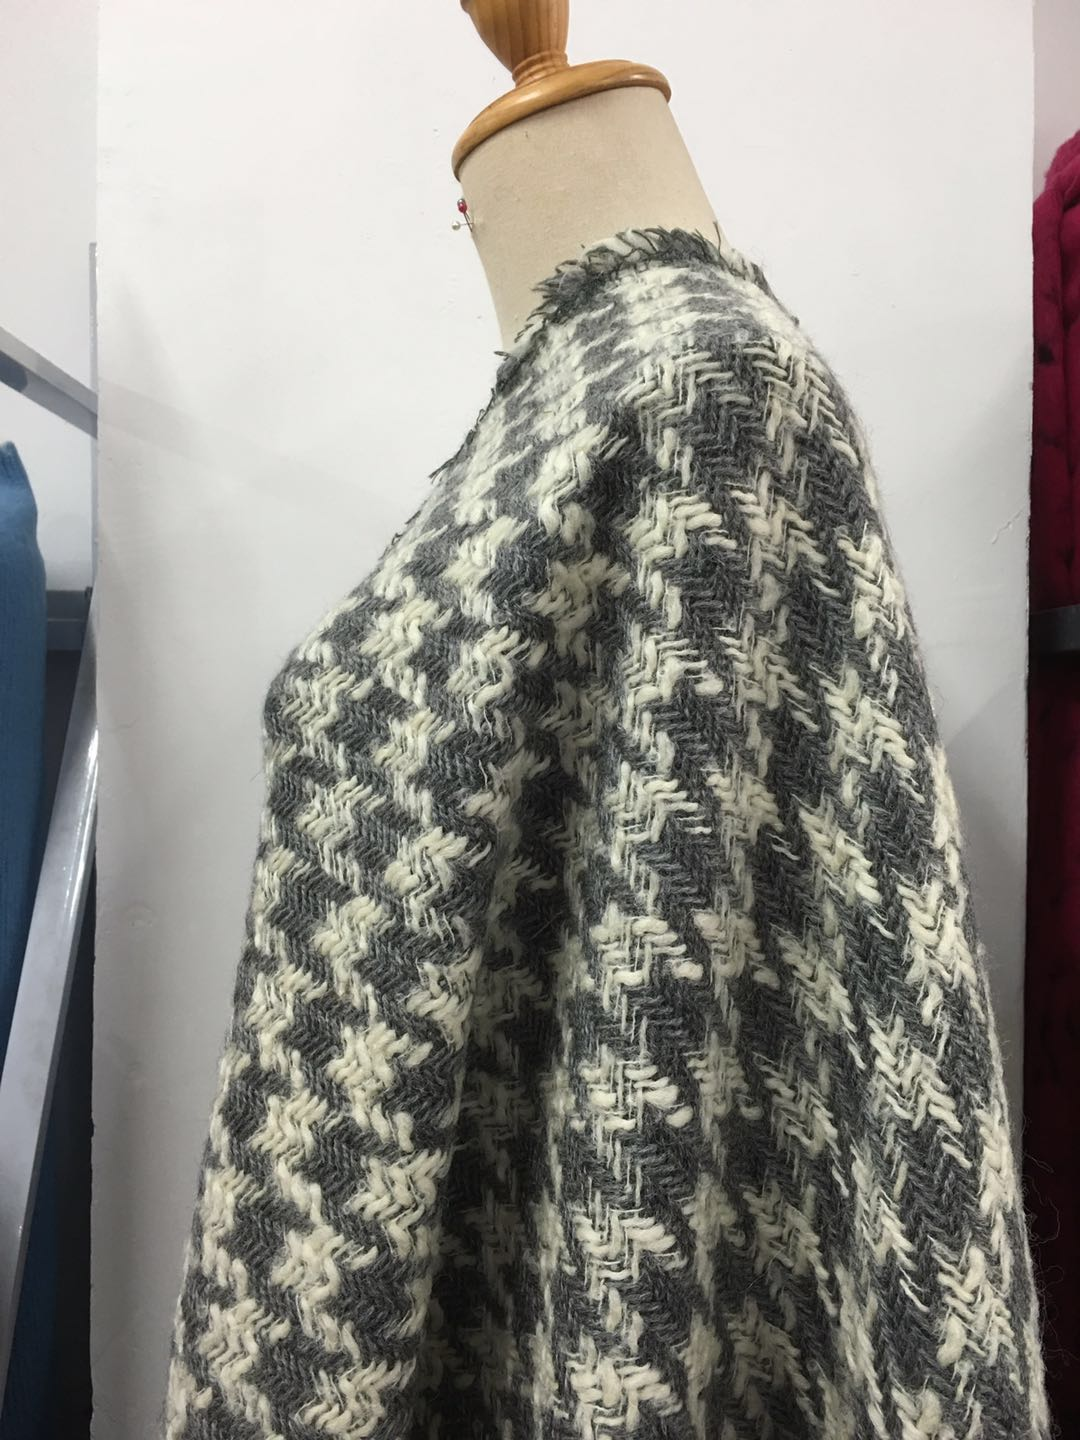 New 140cm wide knitted wool surface high grade Houndstooth woven wool fabric winter jacket fabric